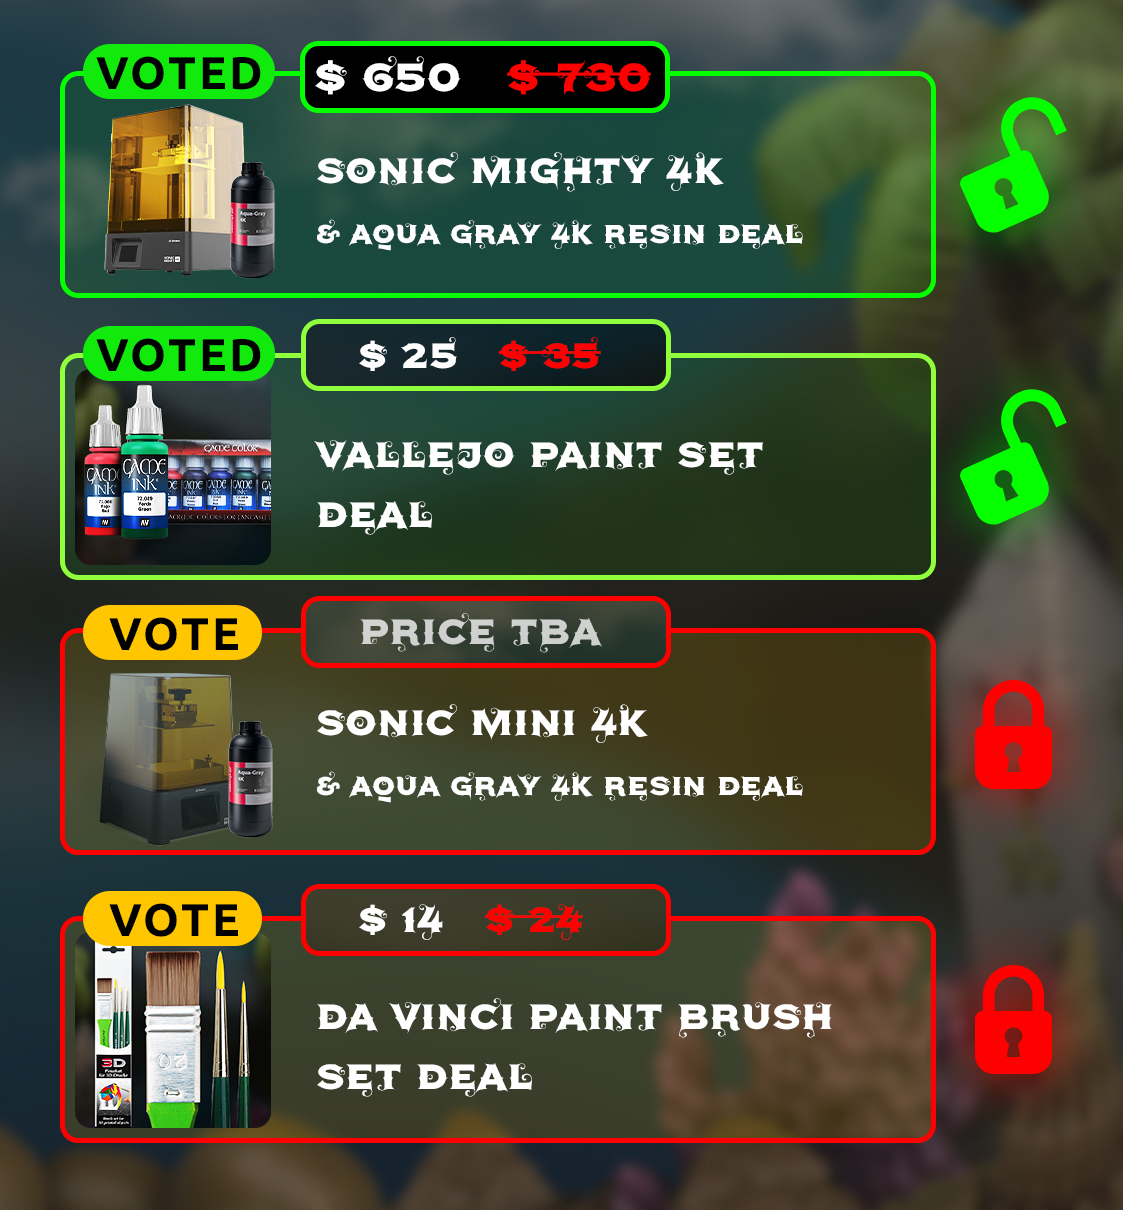 VOTE STRETCH GOALS